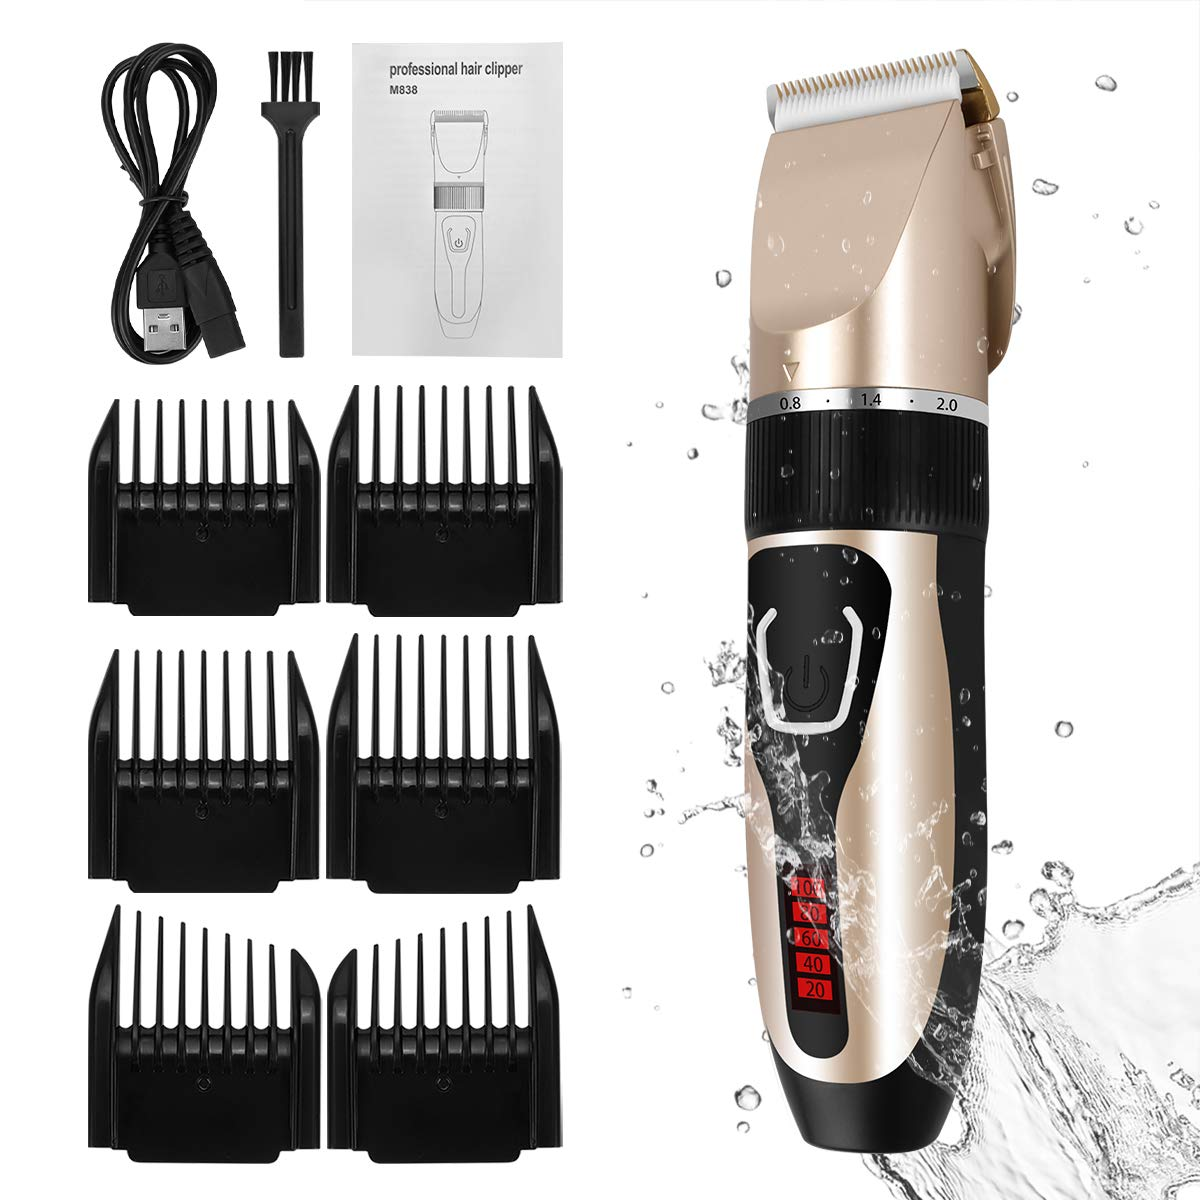 Amazon Com Cordless Mens Haircut Machine Professional Hair Clippers Electric Grooming Trimmer Set Rechargeable Hair Cutting Kits For Barber Kids Baby Father S Day Golden Beauty